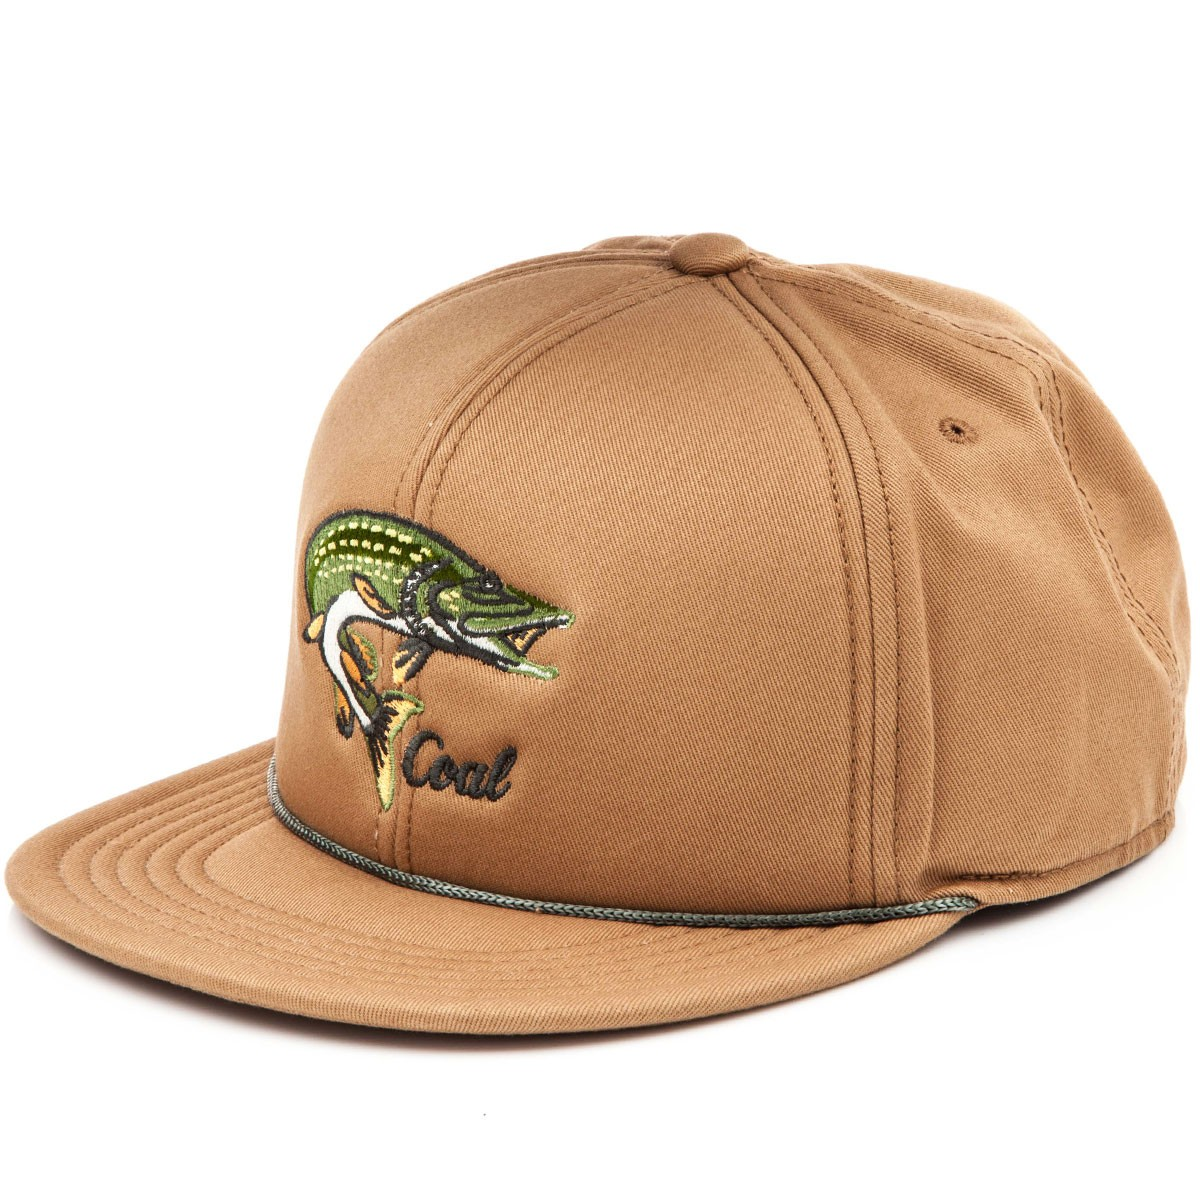 Coal The Wilderness SP Hat - Light Brown (Pike)